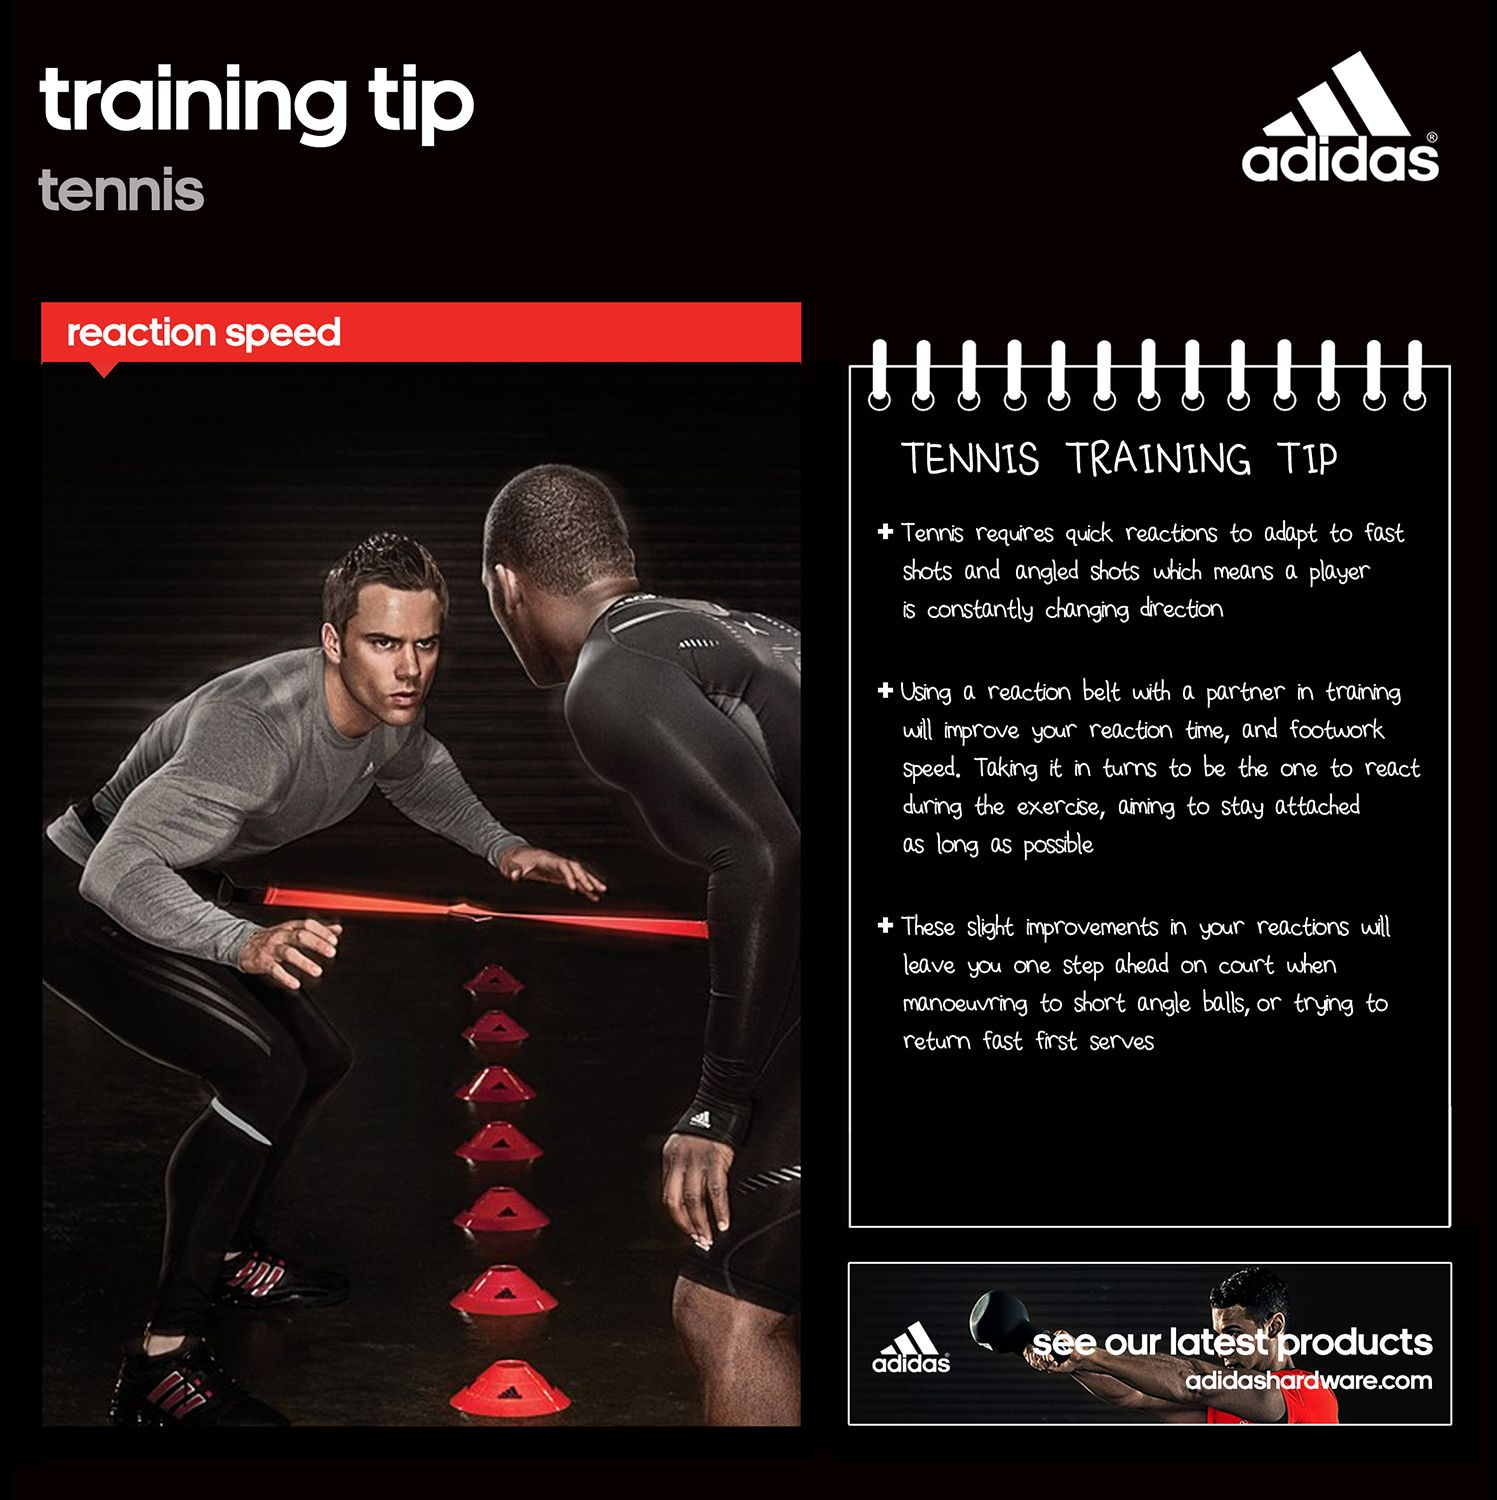 #Wimbledon continues today with the ladies semi finals - can Halep overcome Bouchard to reach the final?  Our tennis training tip today is all about reaction speed. With players constantly on the move, they need to react quickly to fast, angled and drop shots. The adidas reaction belt tests your ability and improves your reactions - perfect for any tennis pro.  Find out more at adidashardware.com/sports-training